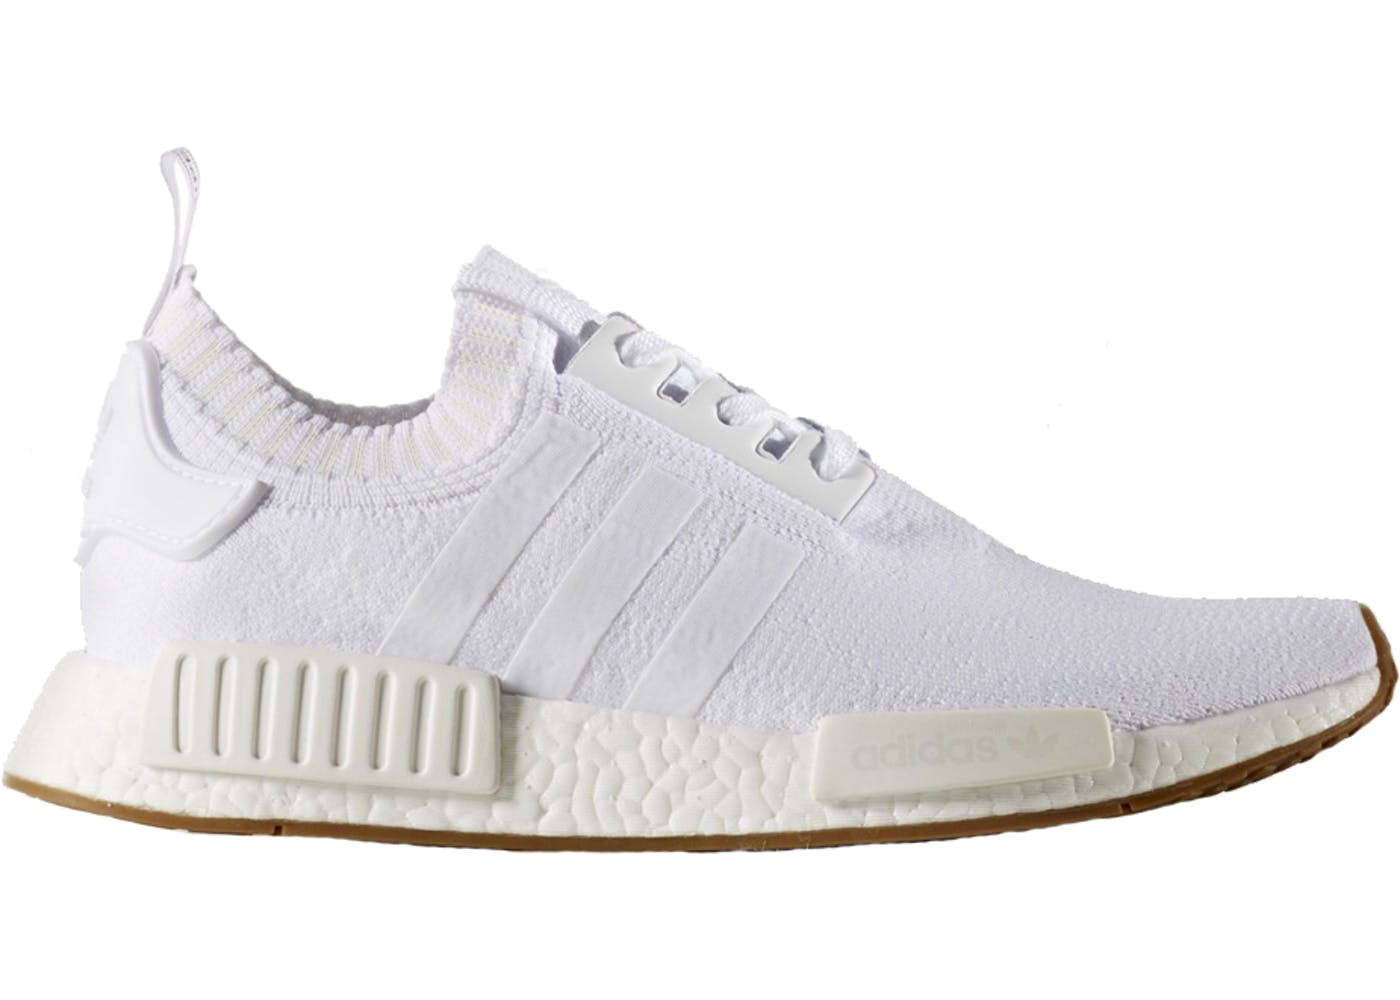 nmd r1 white/black